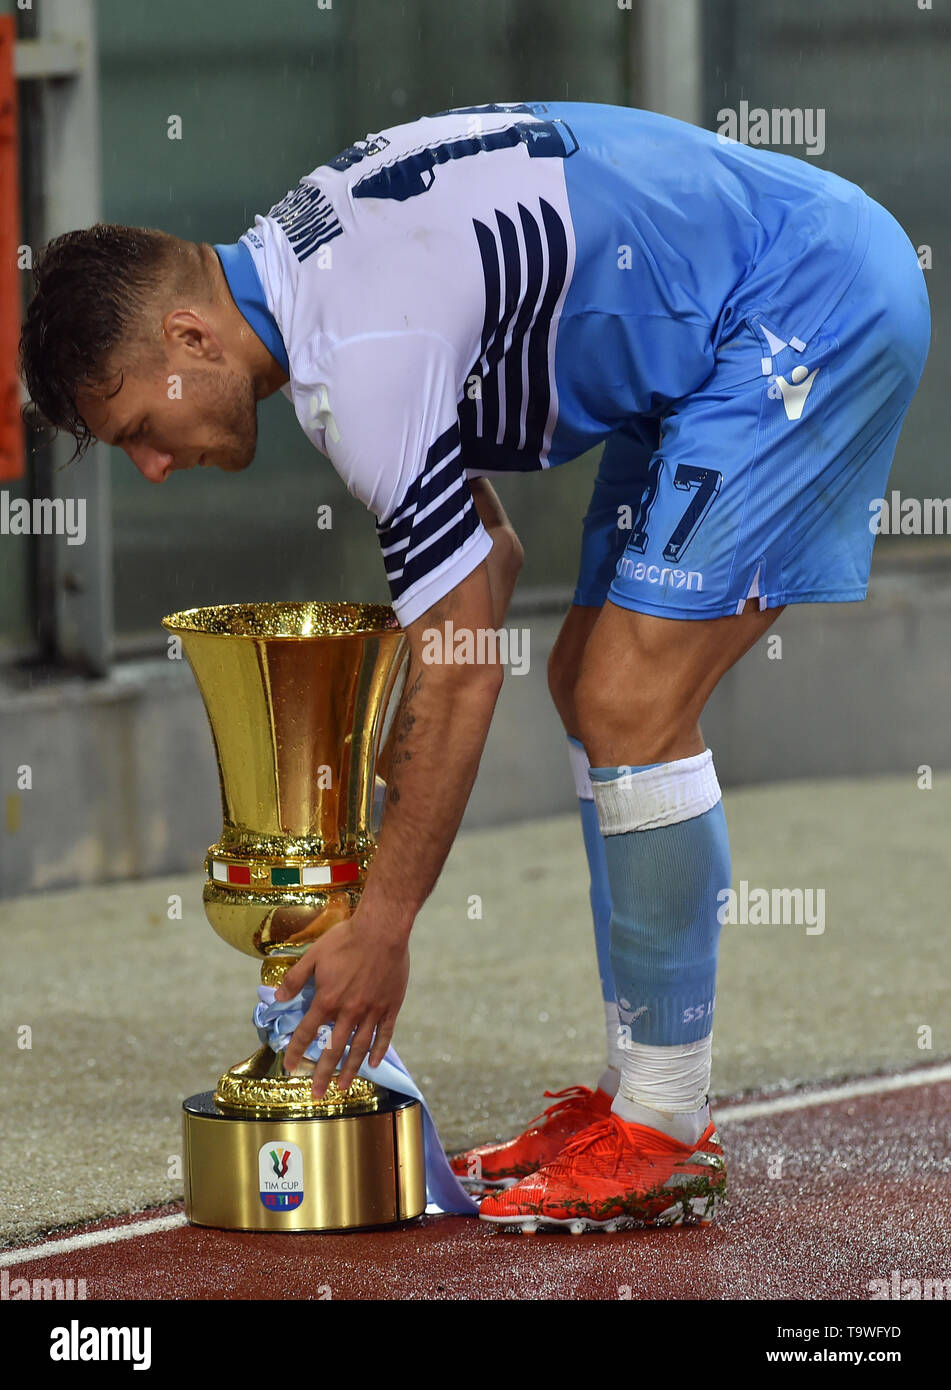 Rome, Italy. 21st May, 2019. Serie A Lazio vs Bologna Stadio Olimpico.Roma 20-05-2019 In the photo Ciro Immobile with the Tim Cup Foto Fotografo01 Credit: Independent Photo Agency/Alamy Live News - Stock Image